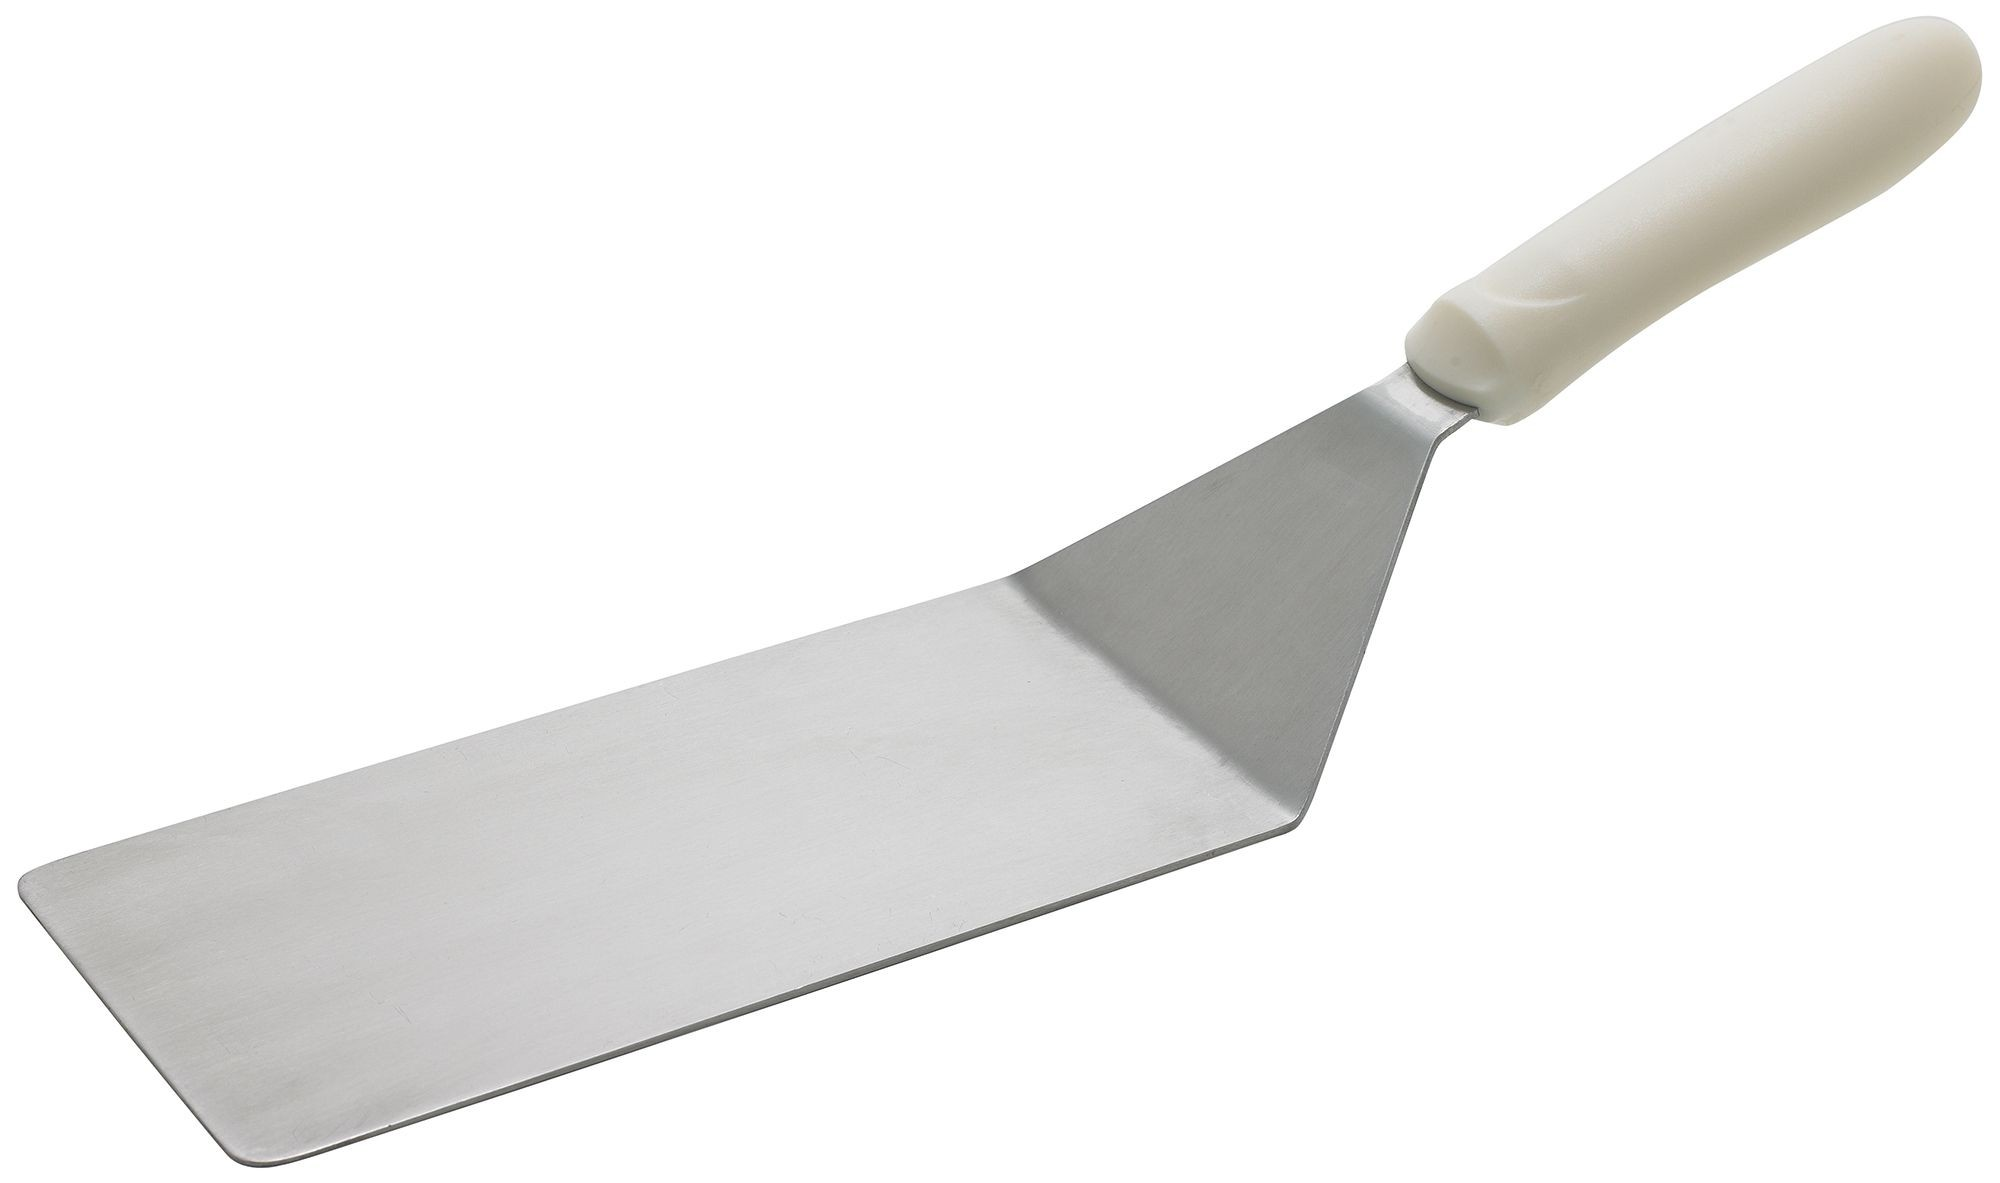 """Winco TWP-42 Offset Solid Turner, 4"""" x 8"""" Blade, White Polypropylene Handle"""